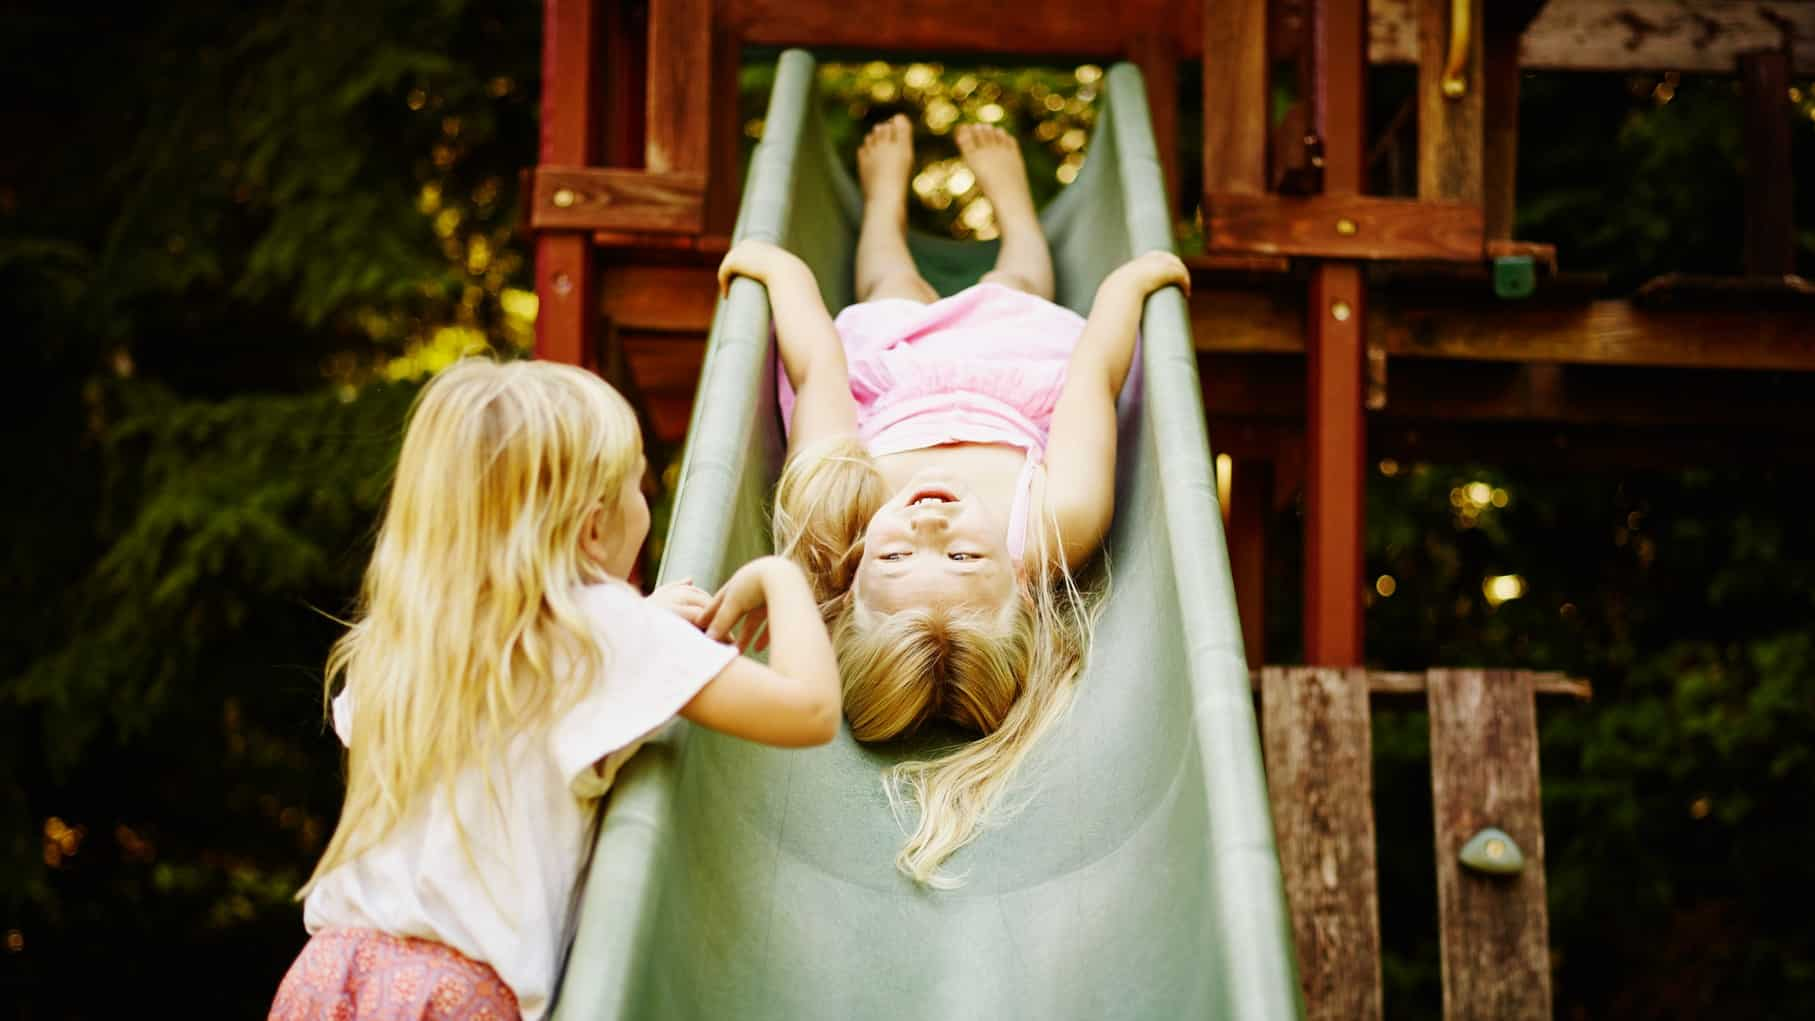 A young girl stands by the slide in a playground while her friend slides down head first and on her back.